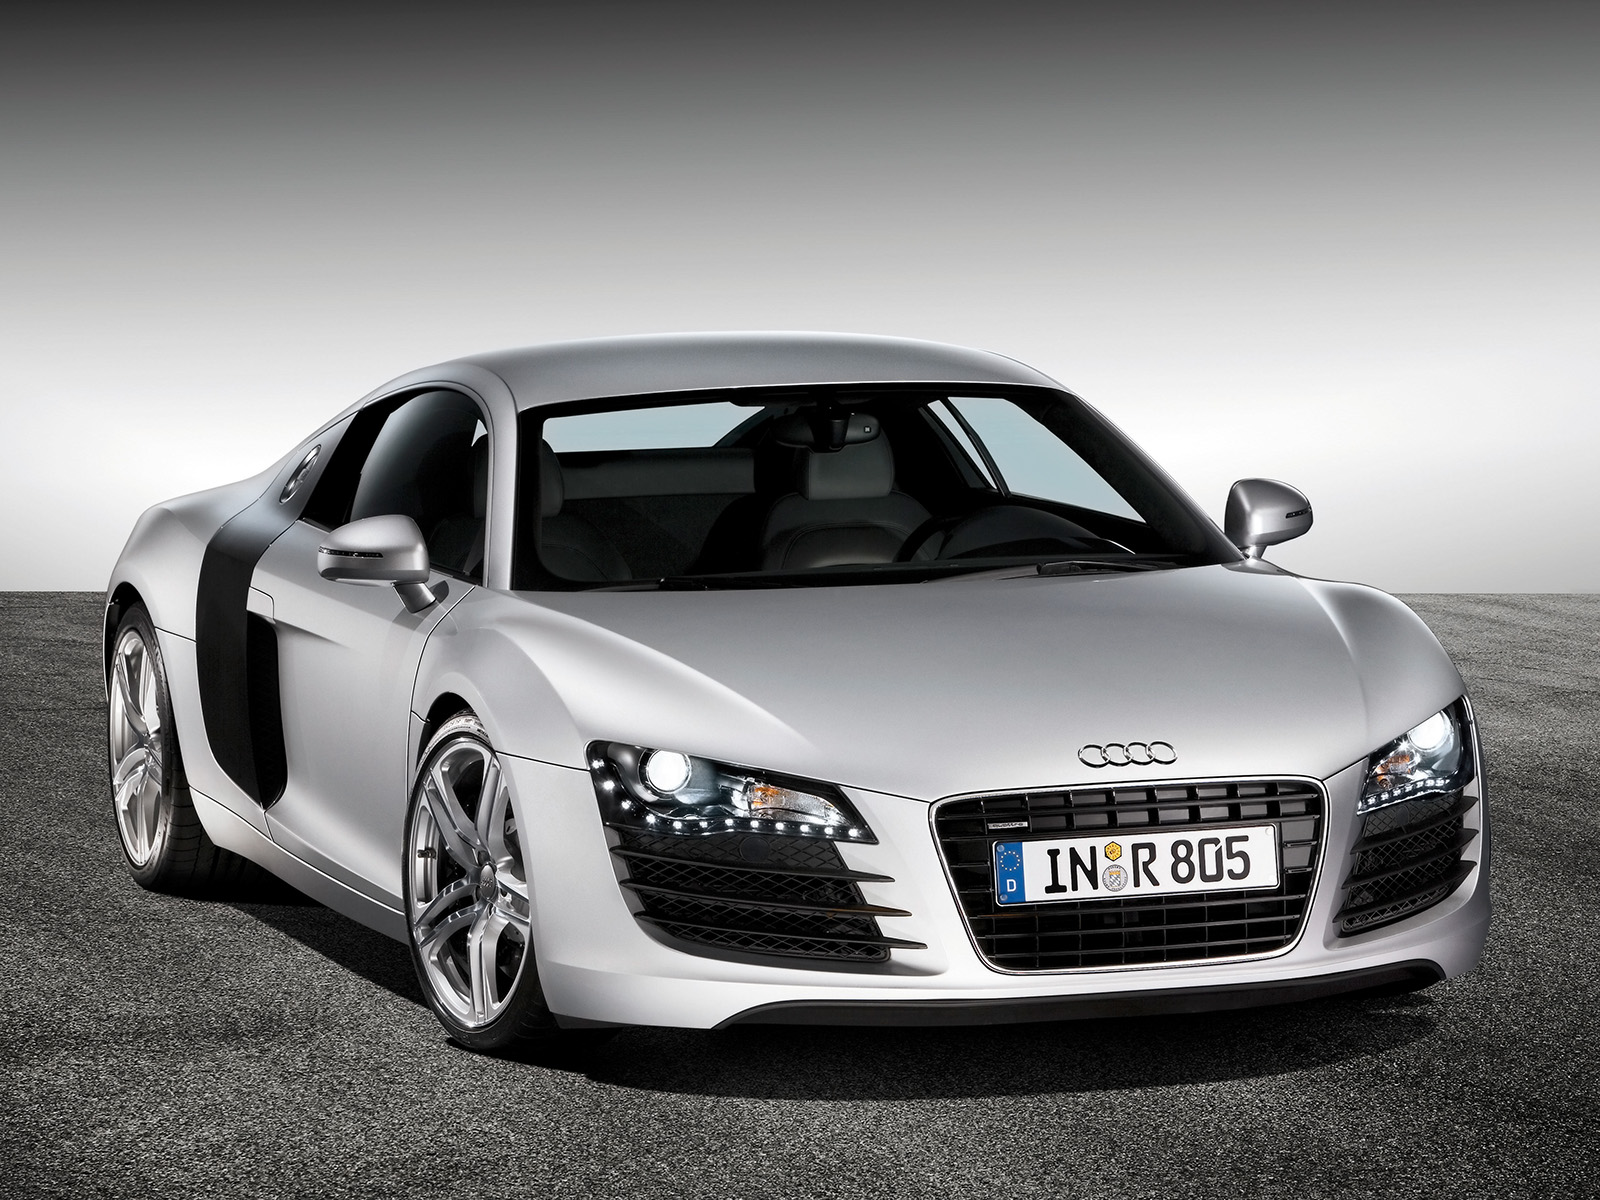 audi cars audi r8 wallpapers. Black Bedroom Furniture Sets. Home Design Ideas